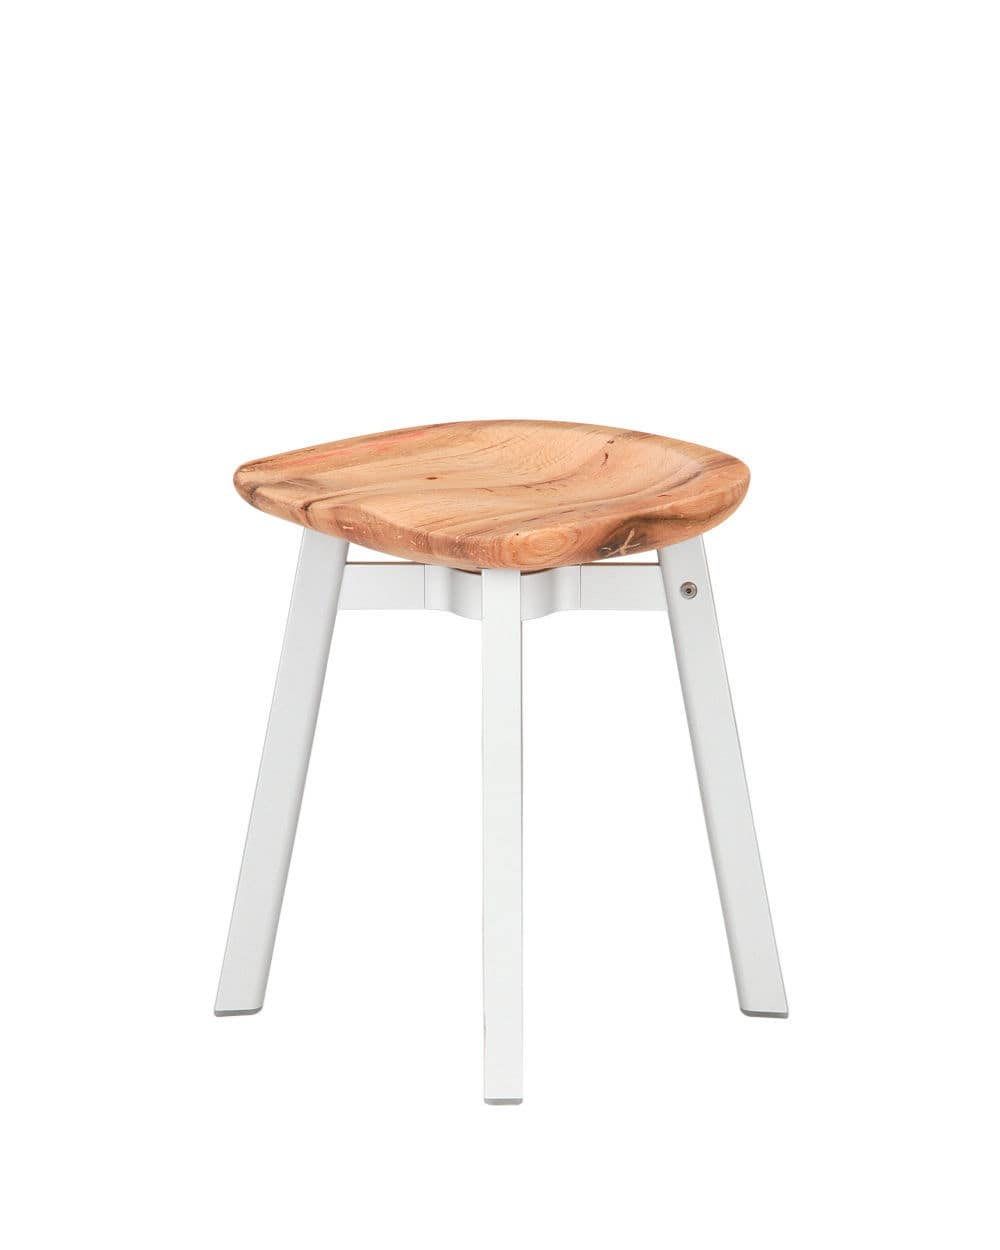 Stupendous Contemporary Stool Wooden Commercial By Studio Nendo Gmtry Best Dining Table And Chair Ideas Images Gmtryco